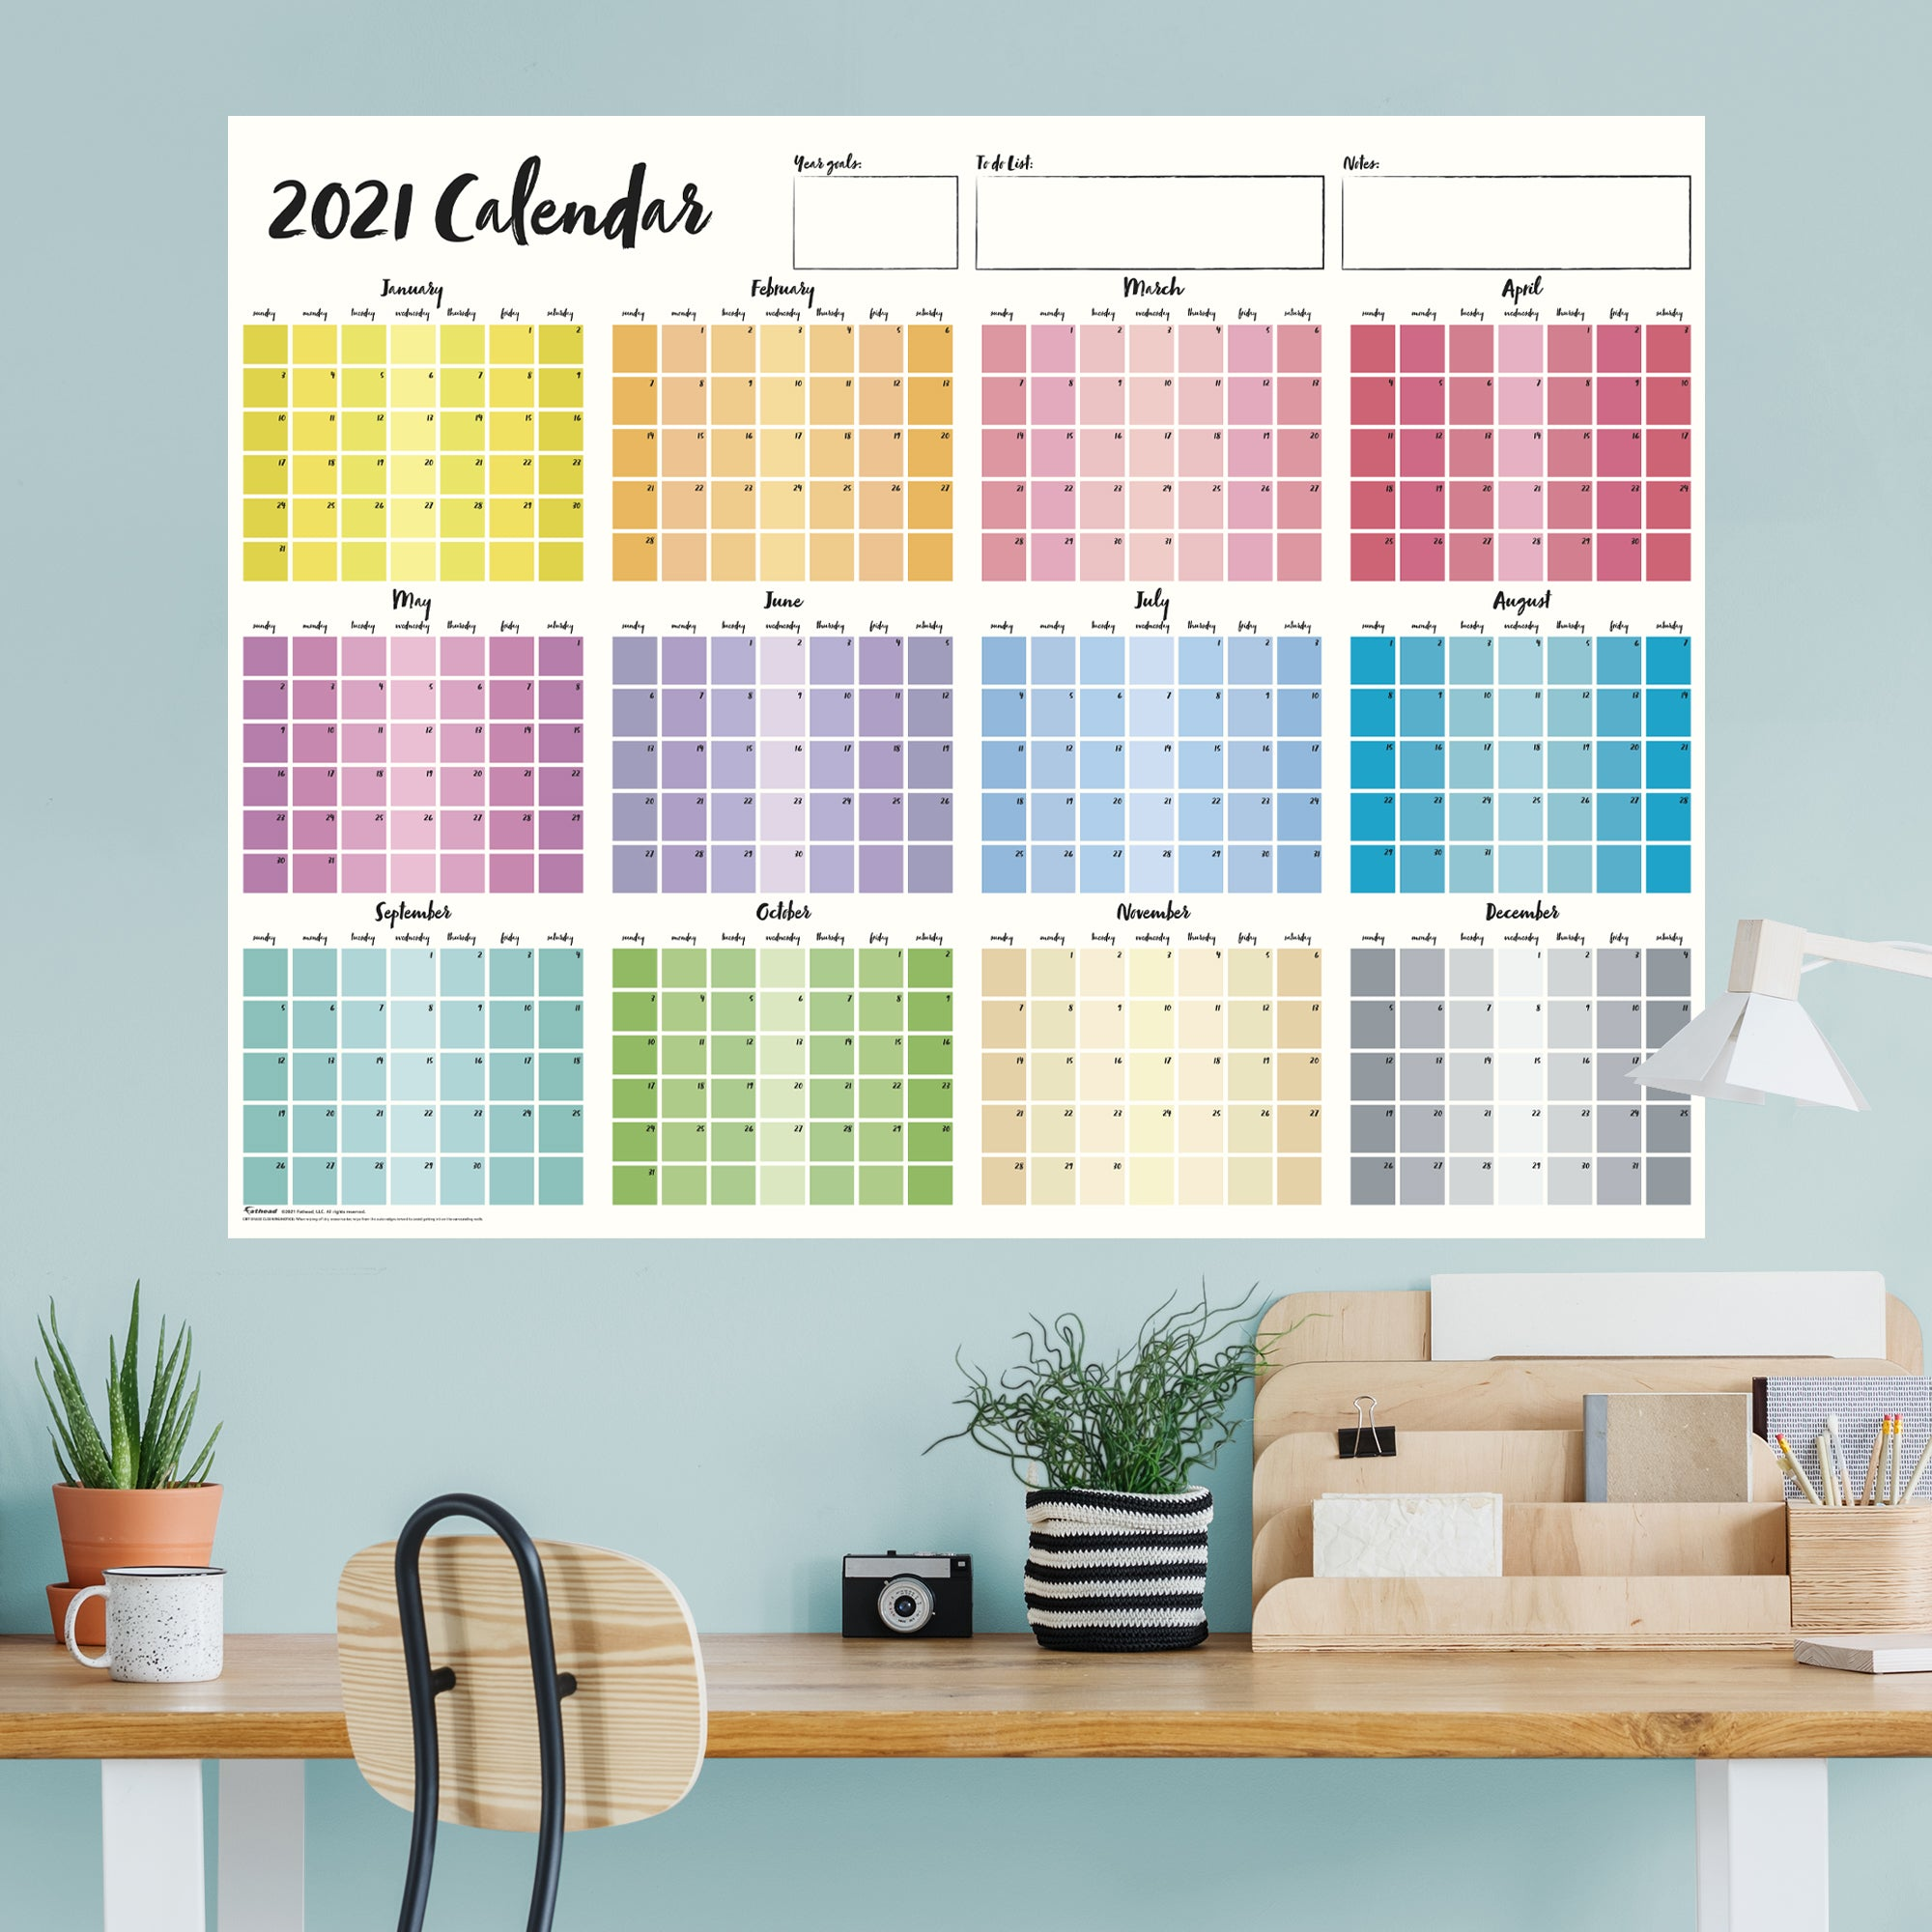 """2021 MULTI-COLOR Dry Erase Calendar - Removable Wall Decal Giant Decal ( 54"""" W x 40"""" H) by Fathead   Vinyl"""